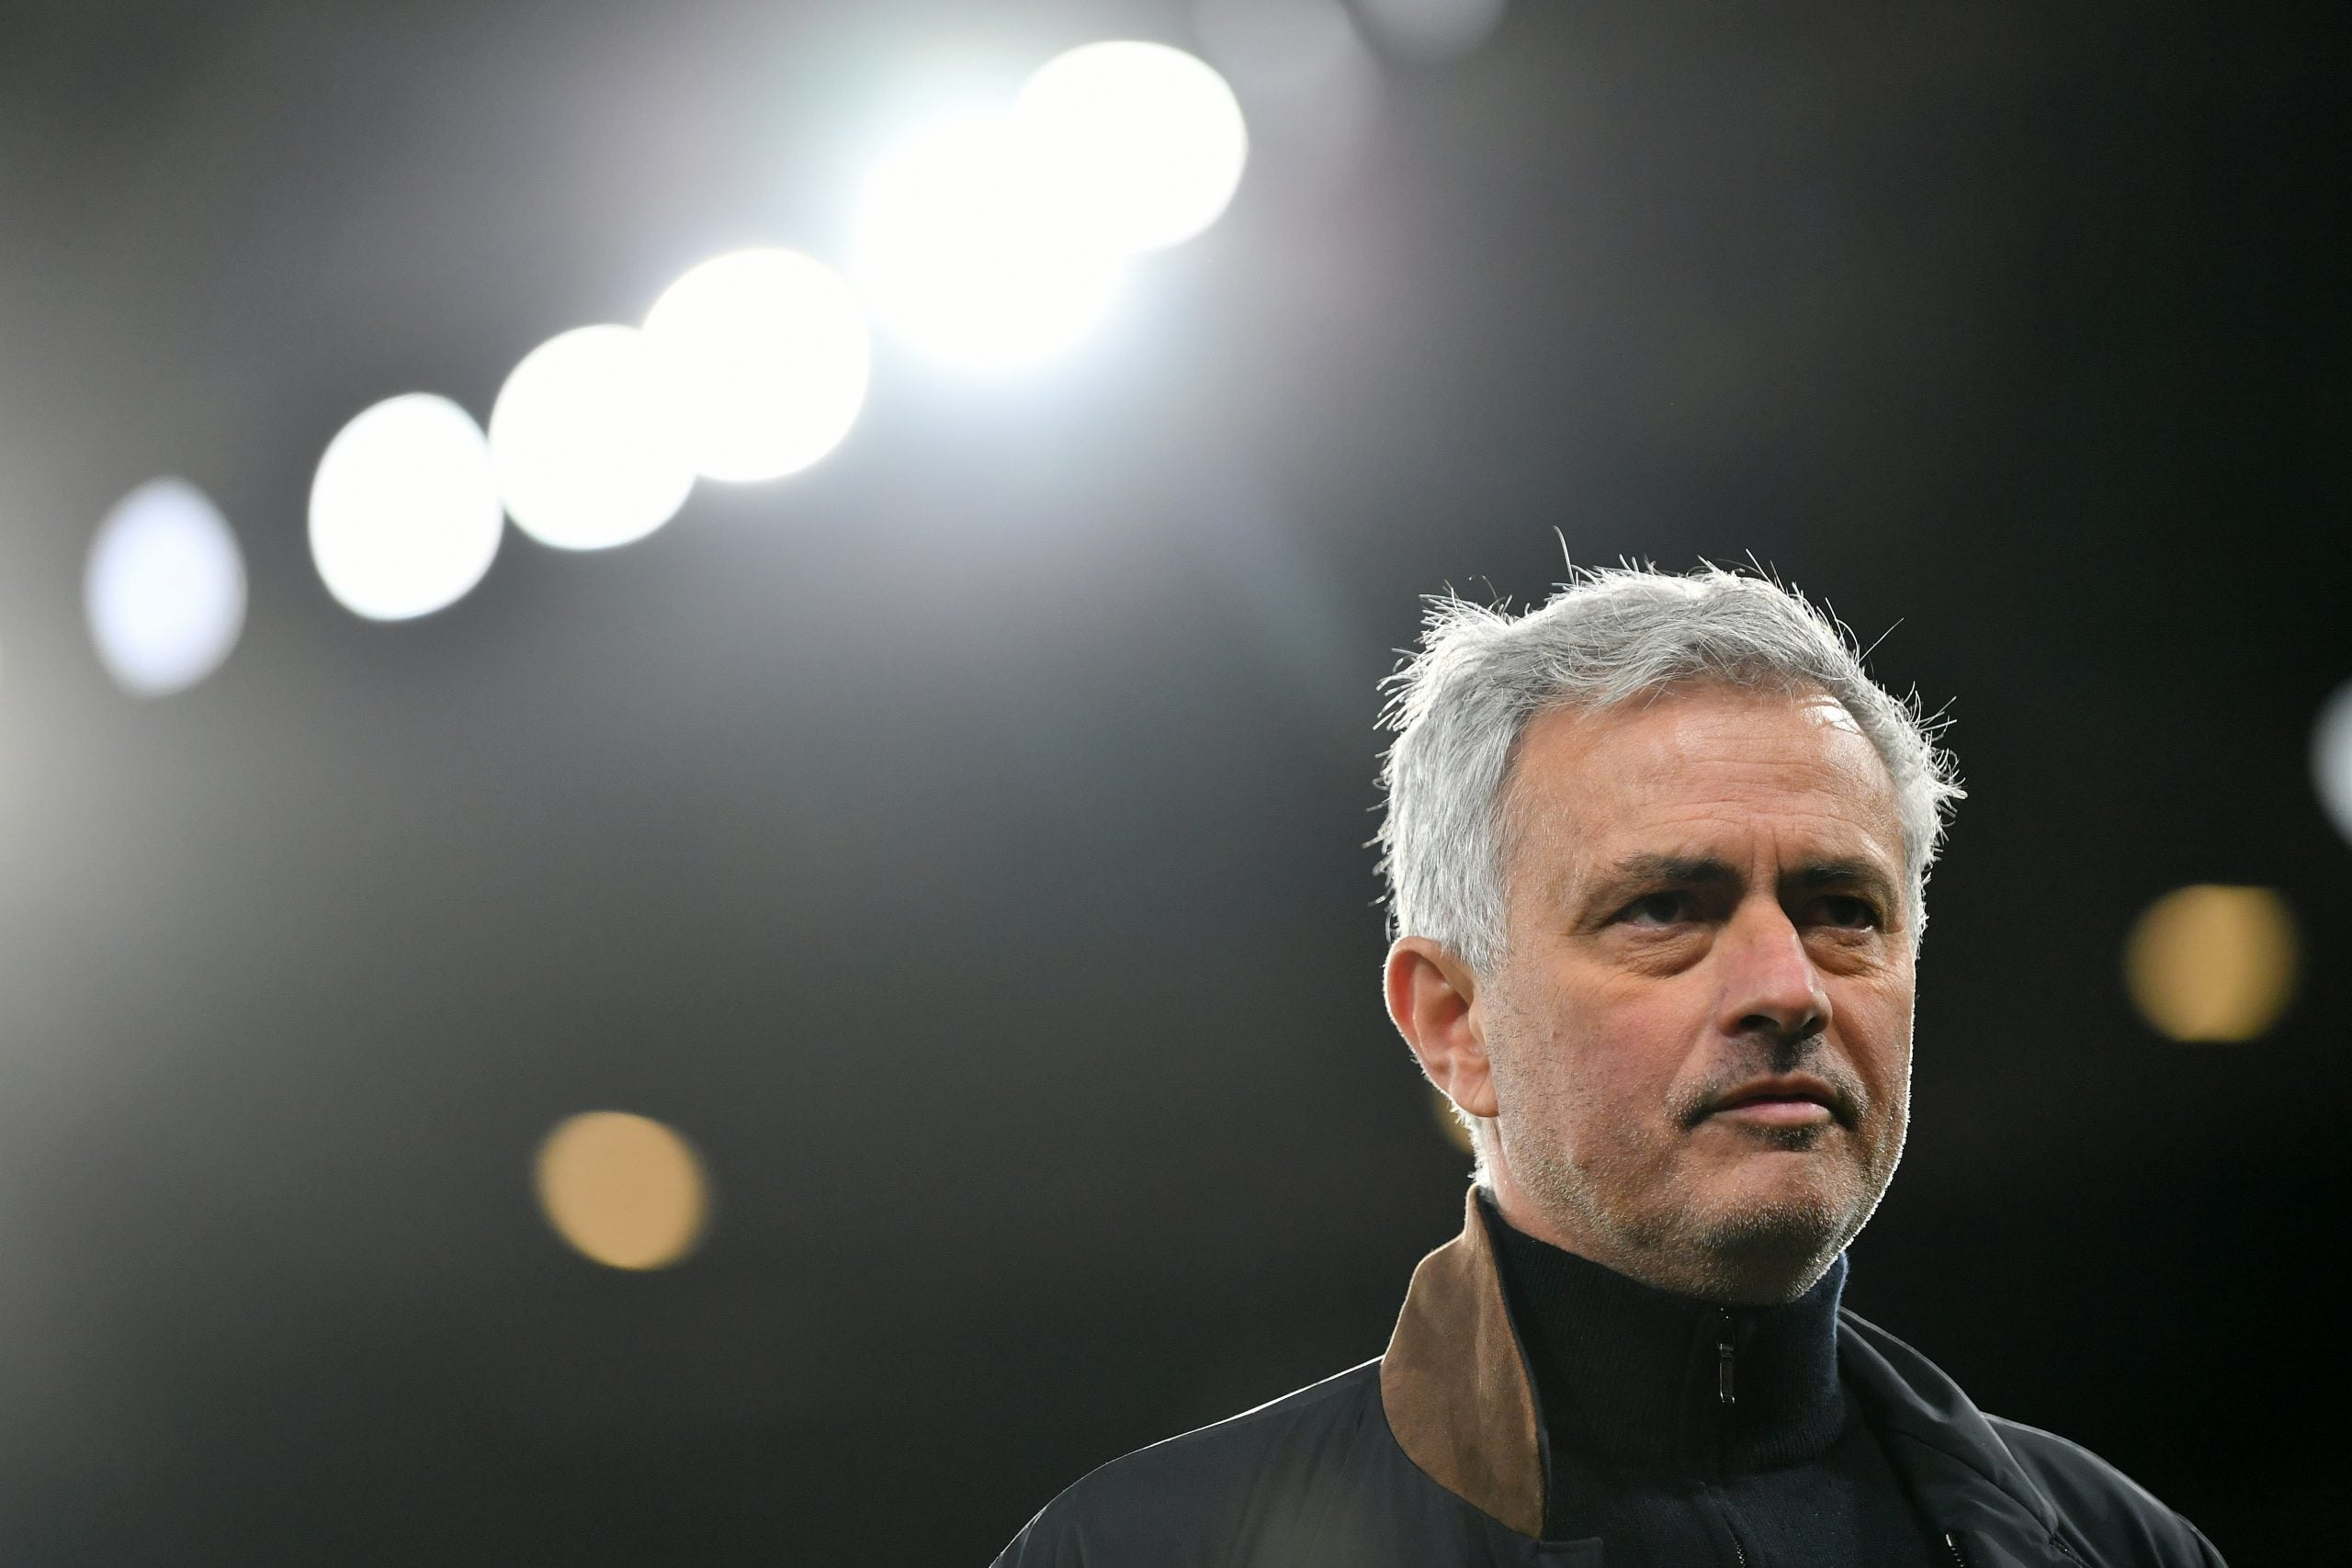 Mourinho was always a bad choice for Spurs, but I know better than to despair